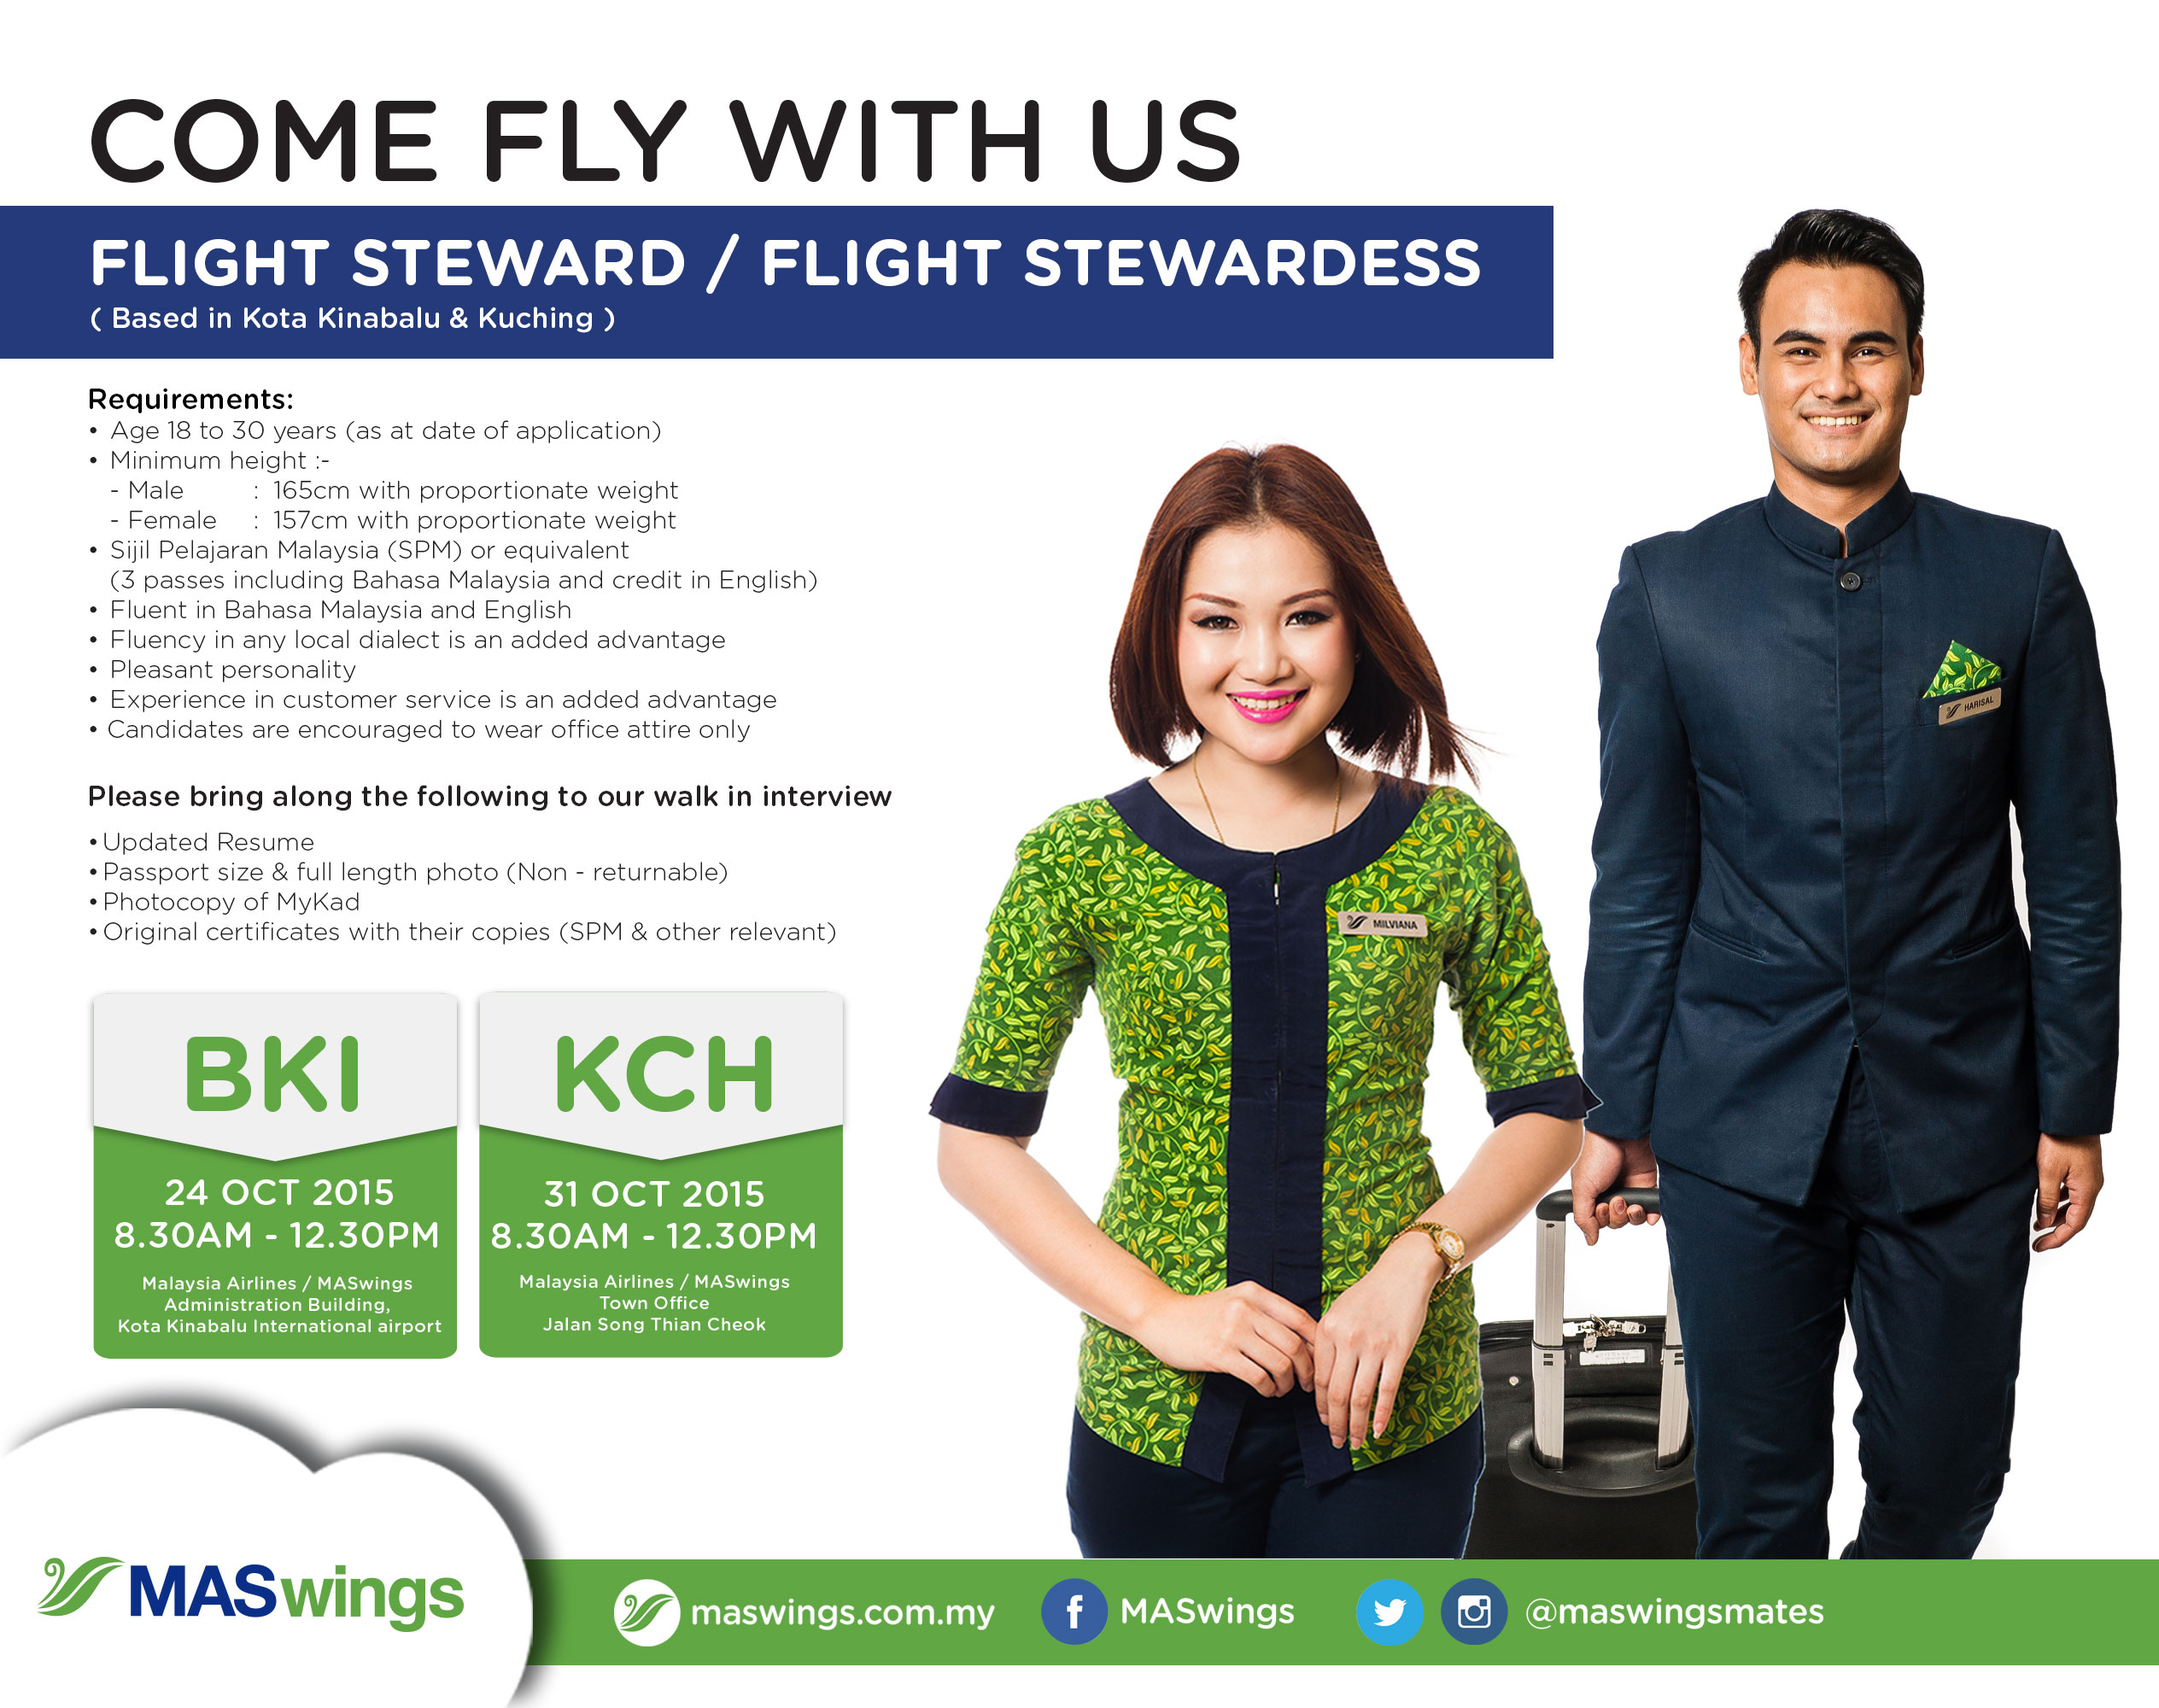 Maswings cabin crew walk in interview october 2015 for Cabin crew recruitment agency philippines